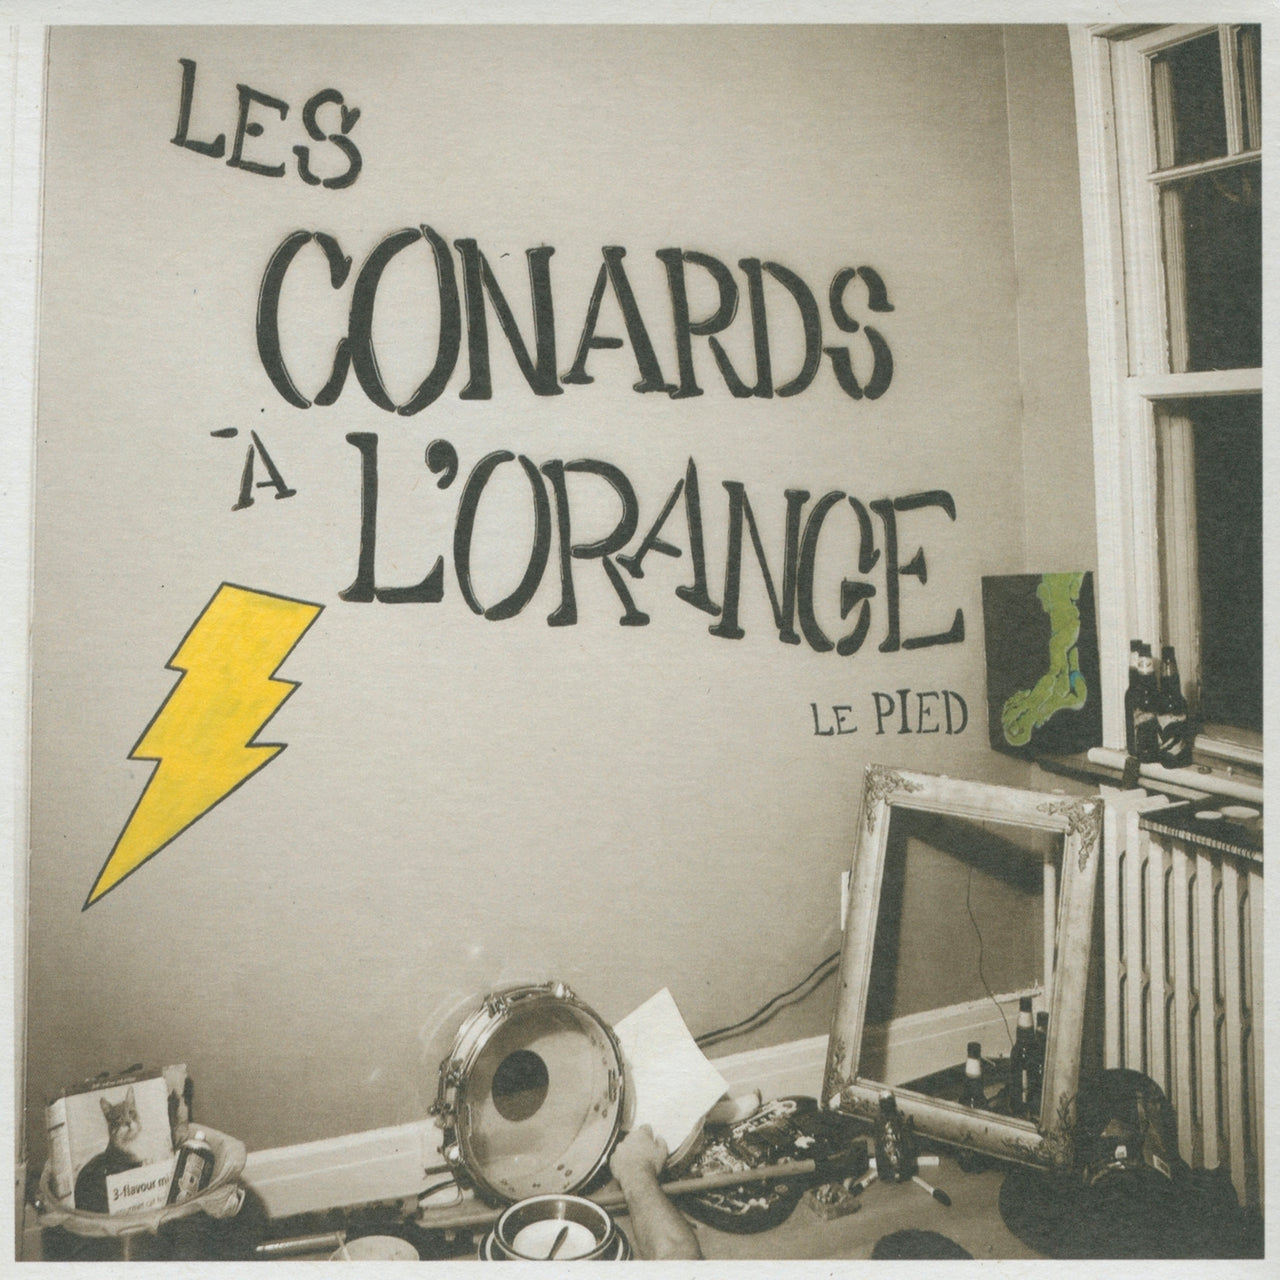 Conards à l'orange (Les) : Le pied  CD